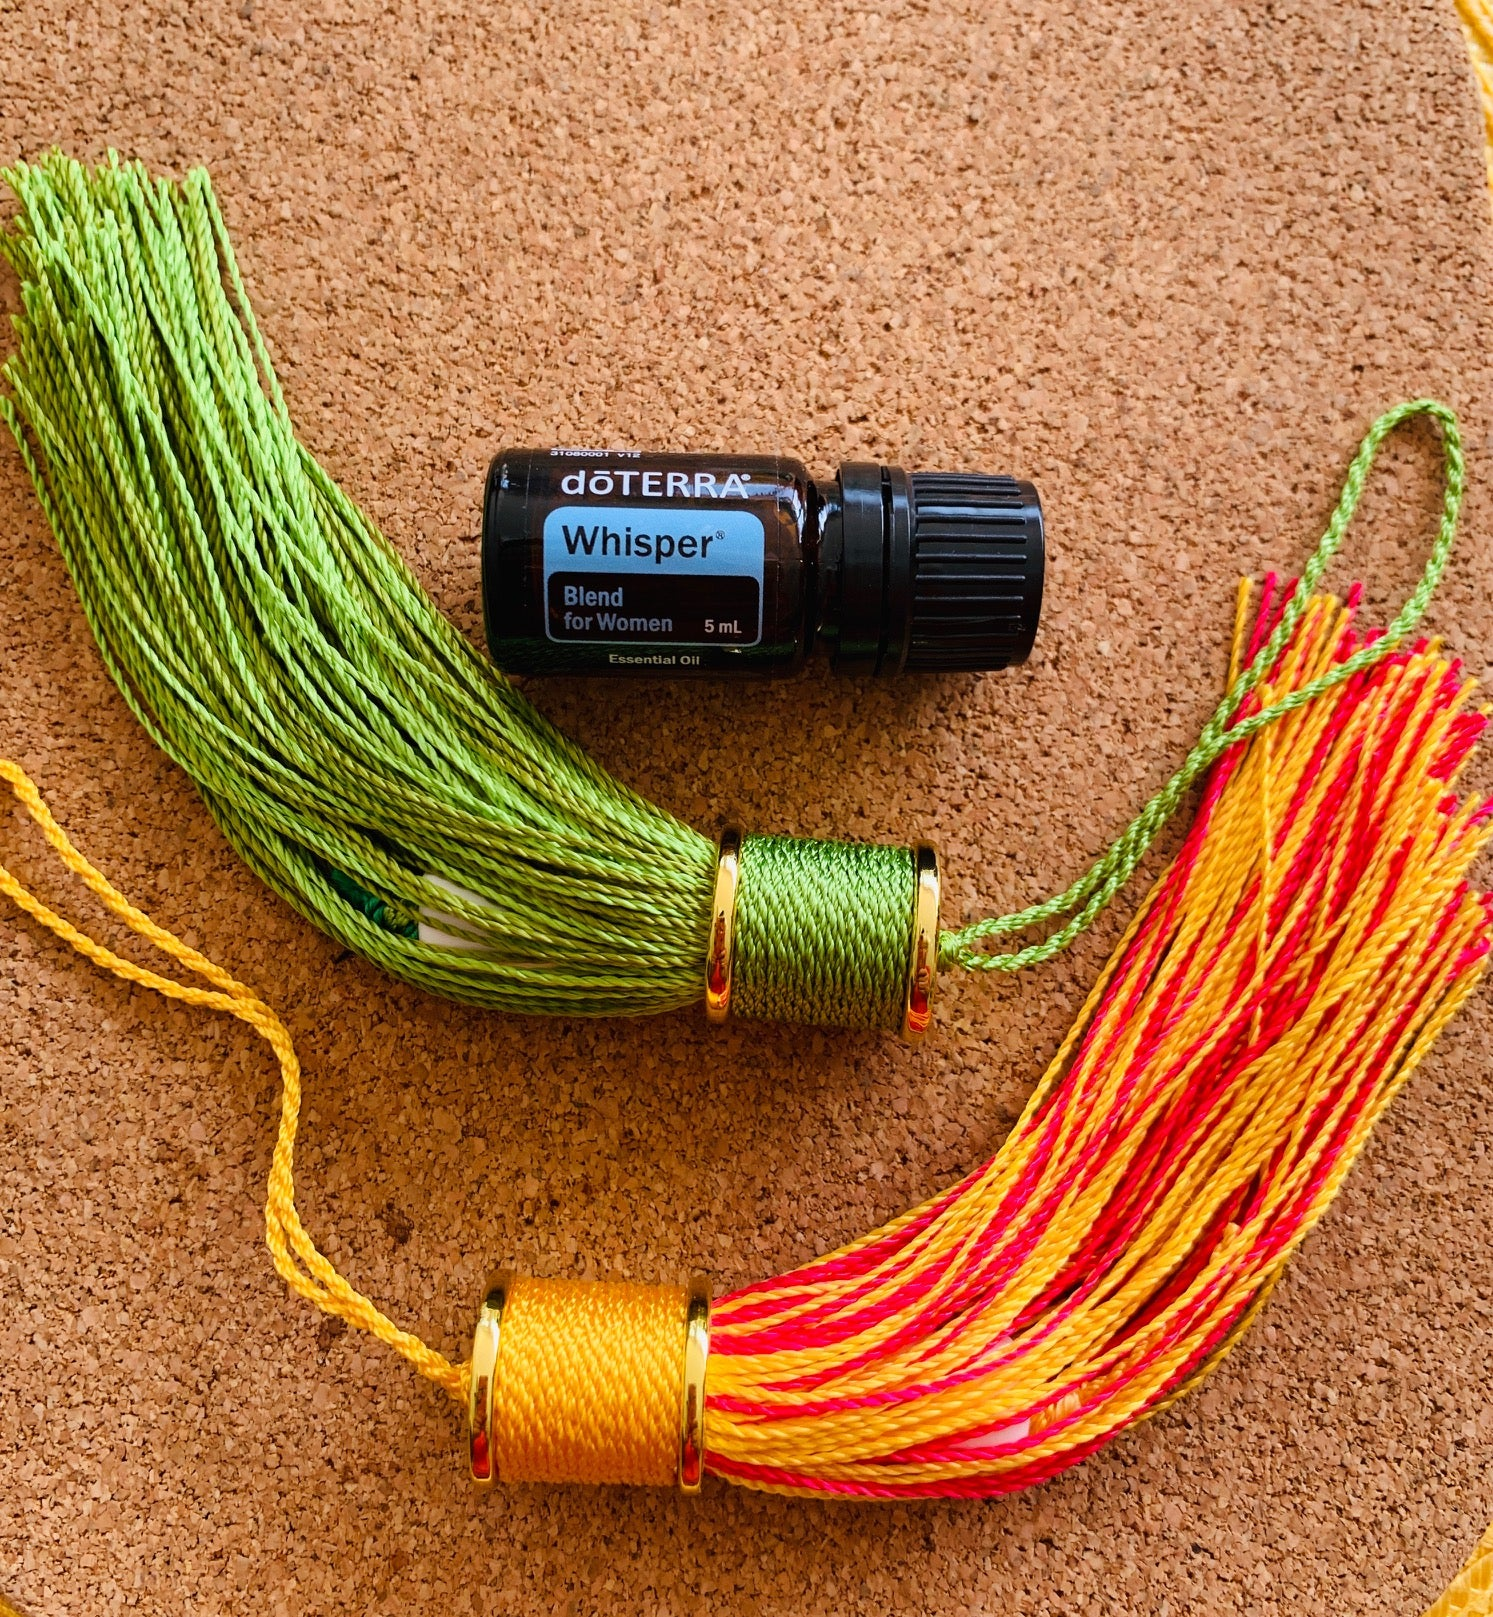 doTerra essential oil whisper blend - fragrant travel tassel